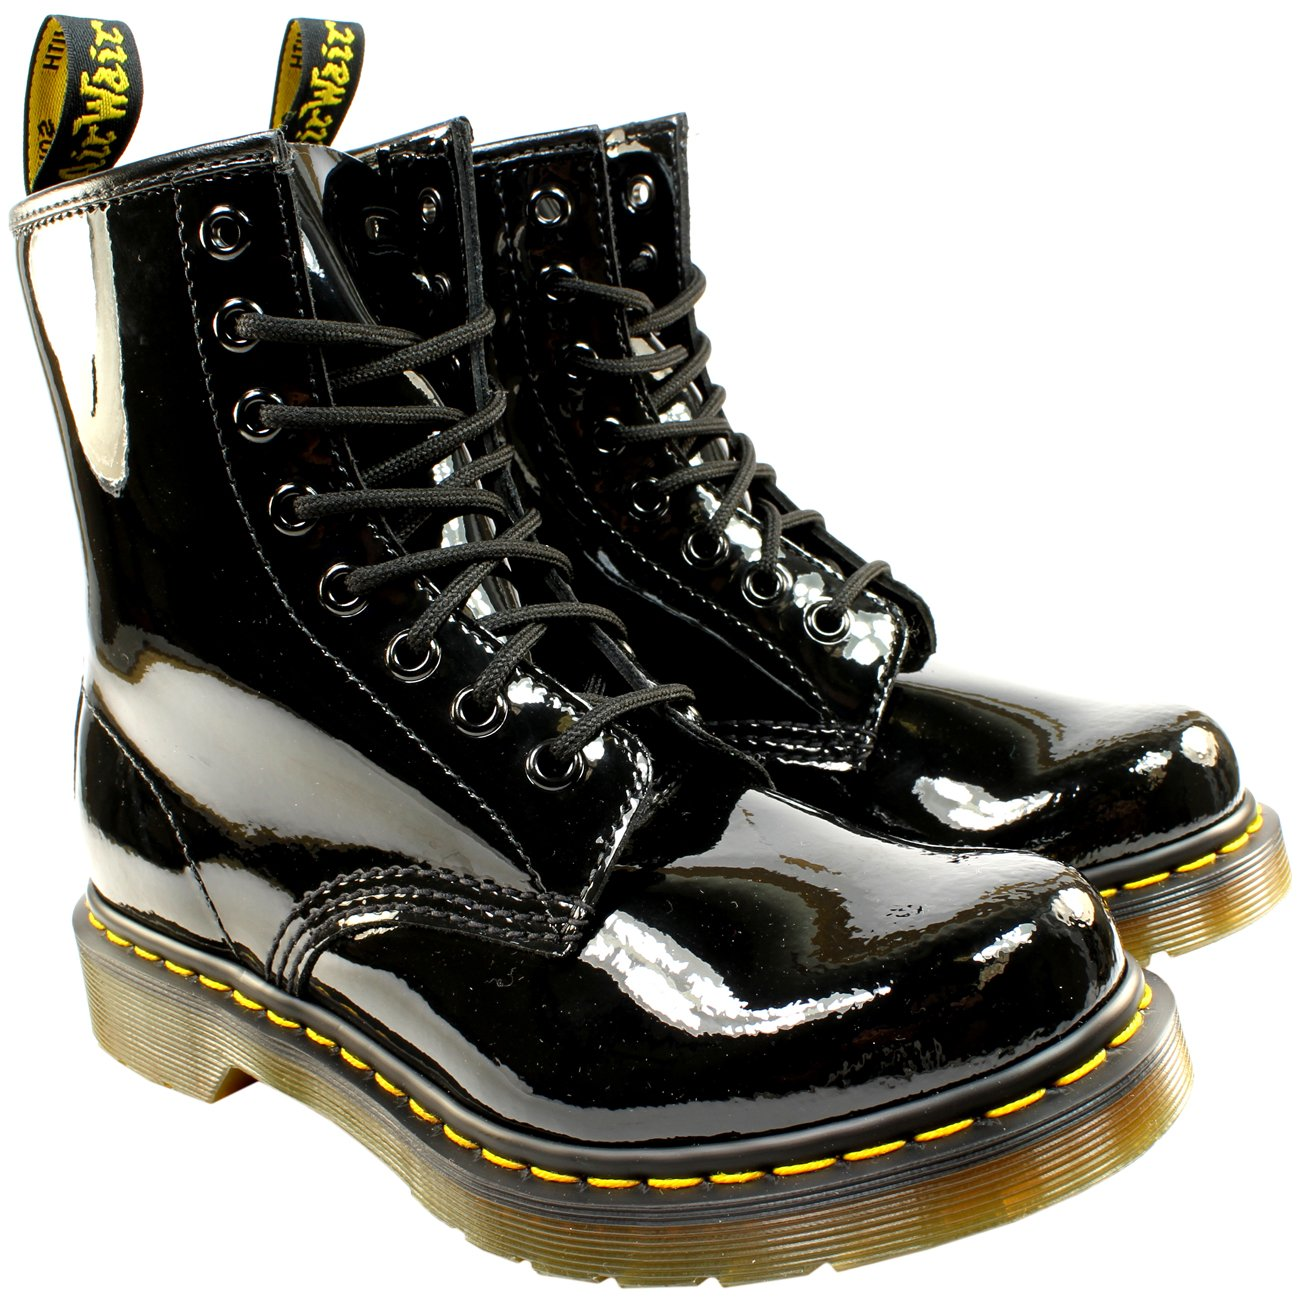 Womens Dr Martens 1460 W 8 Eyelet Patent Lamper Army Combat Lace Up Boot B00KN2DSMC 5 B(M) US|Black